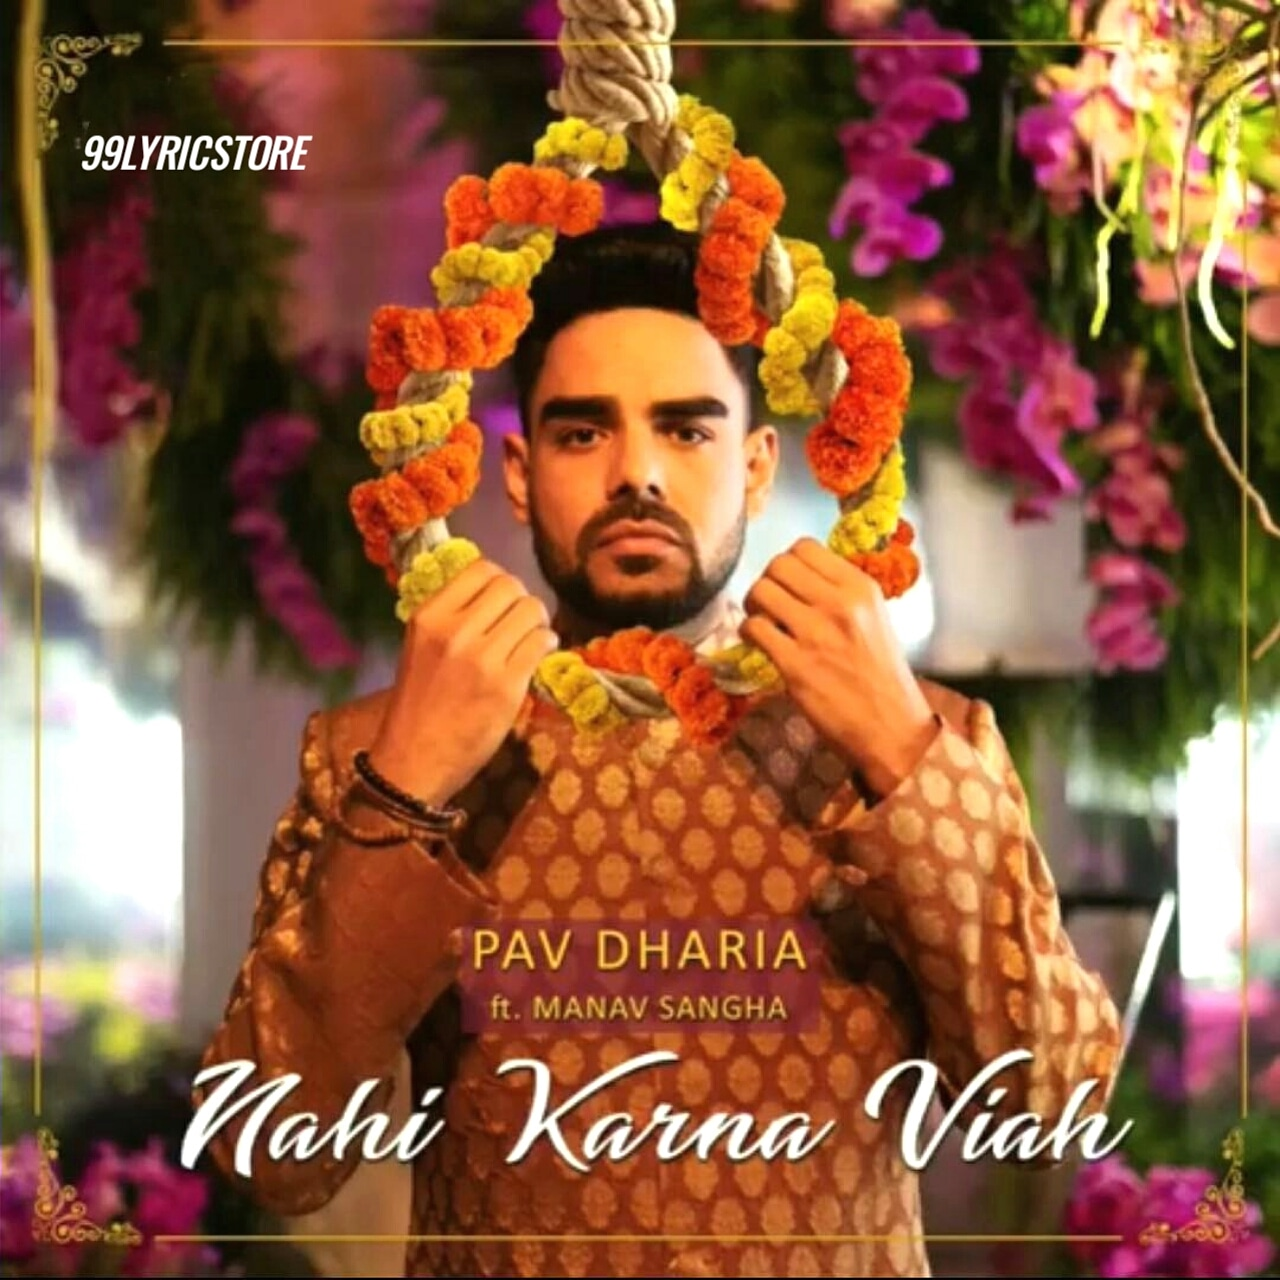 Nahi Karna Viah Punjabi Song Lyrics Sung by Pav Dharia Feat. Manav